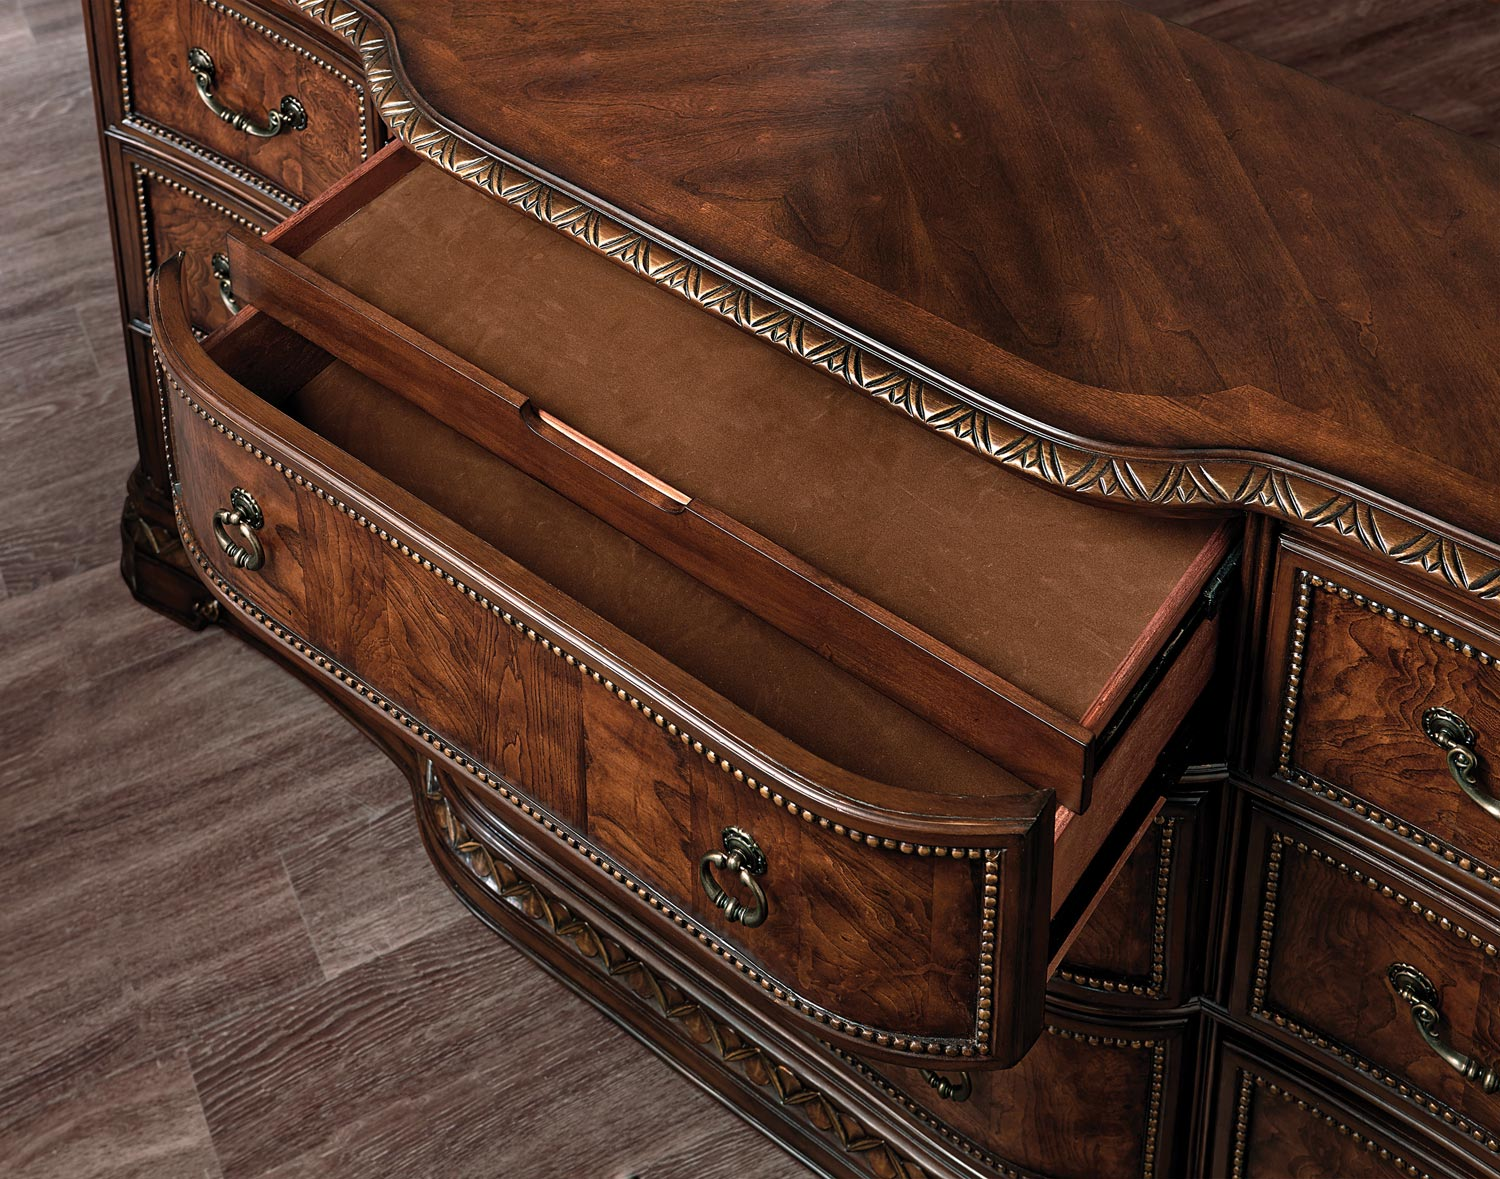 Homelegance Brompton Lane Dresser with Hidden Drawer - Cherry